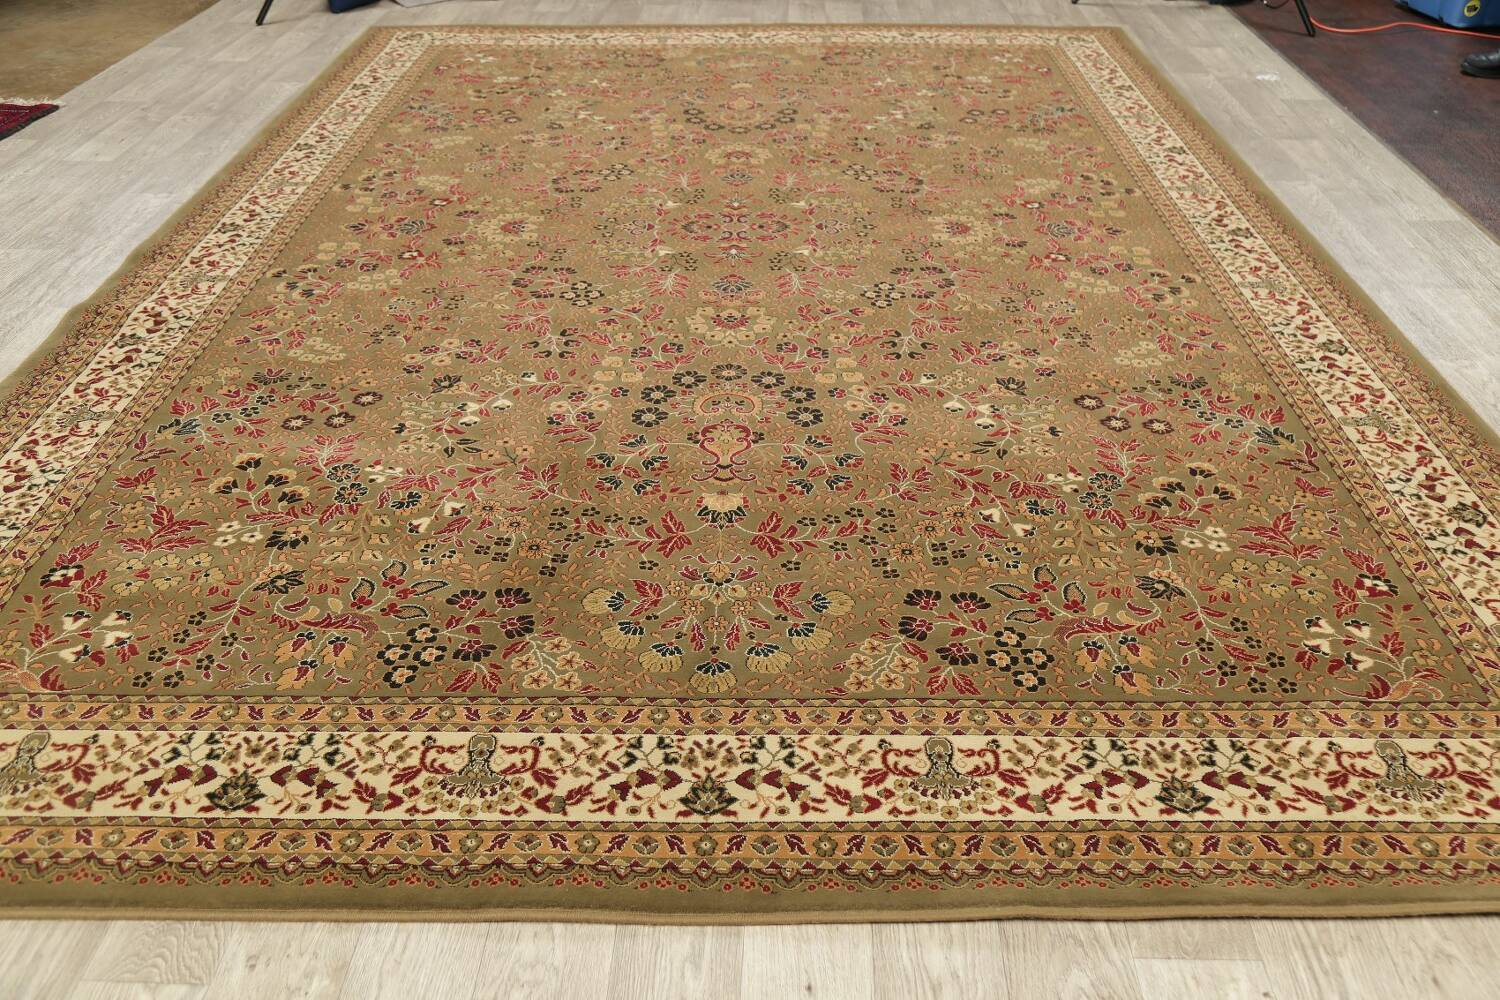 All-Over Floral Agra Turkish Area Rugs image 13